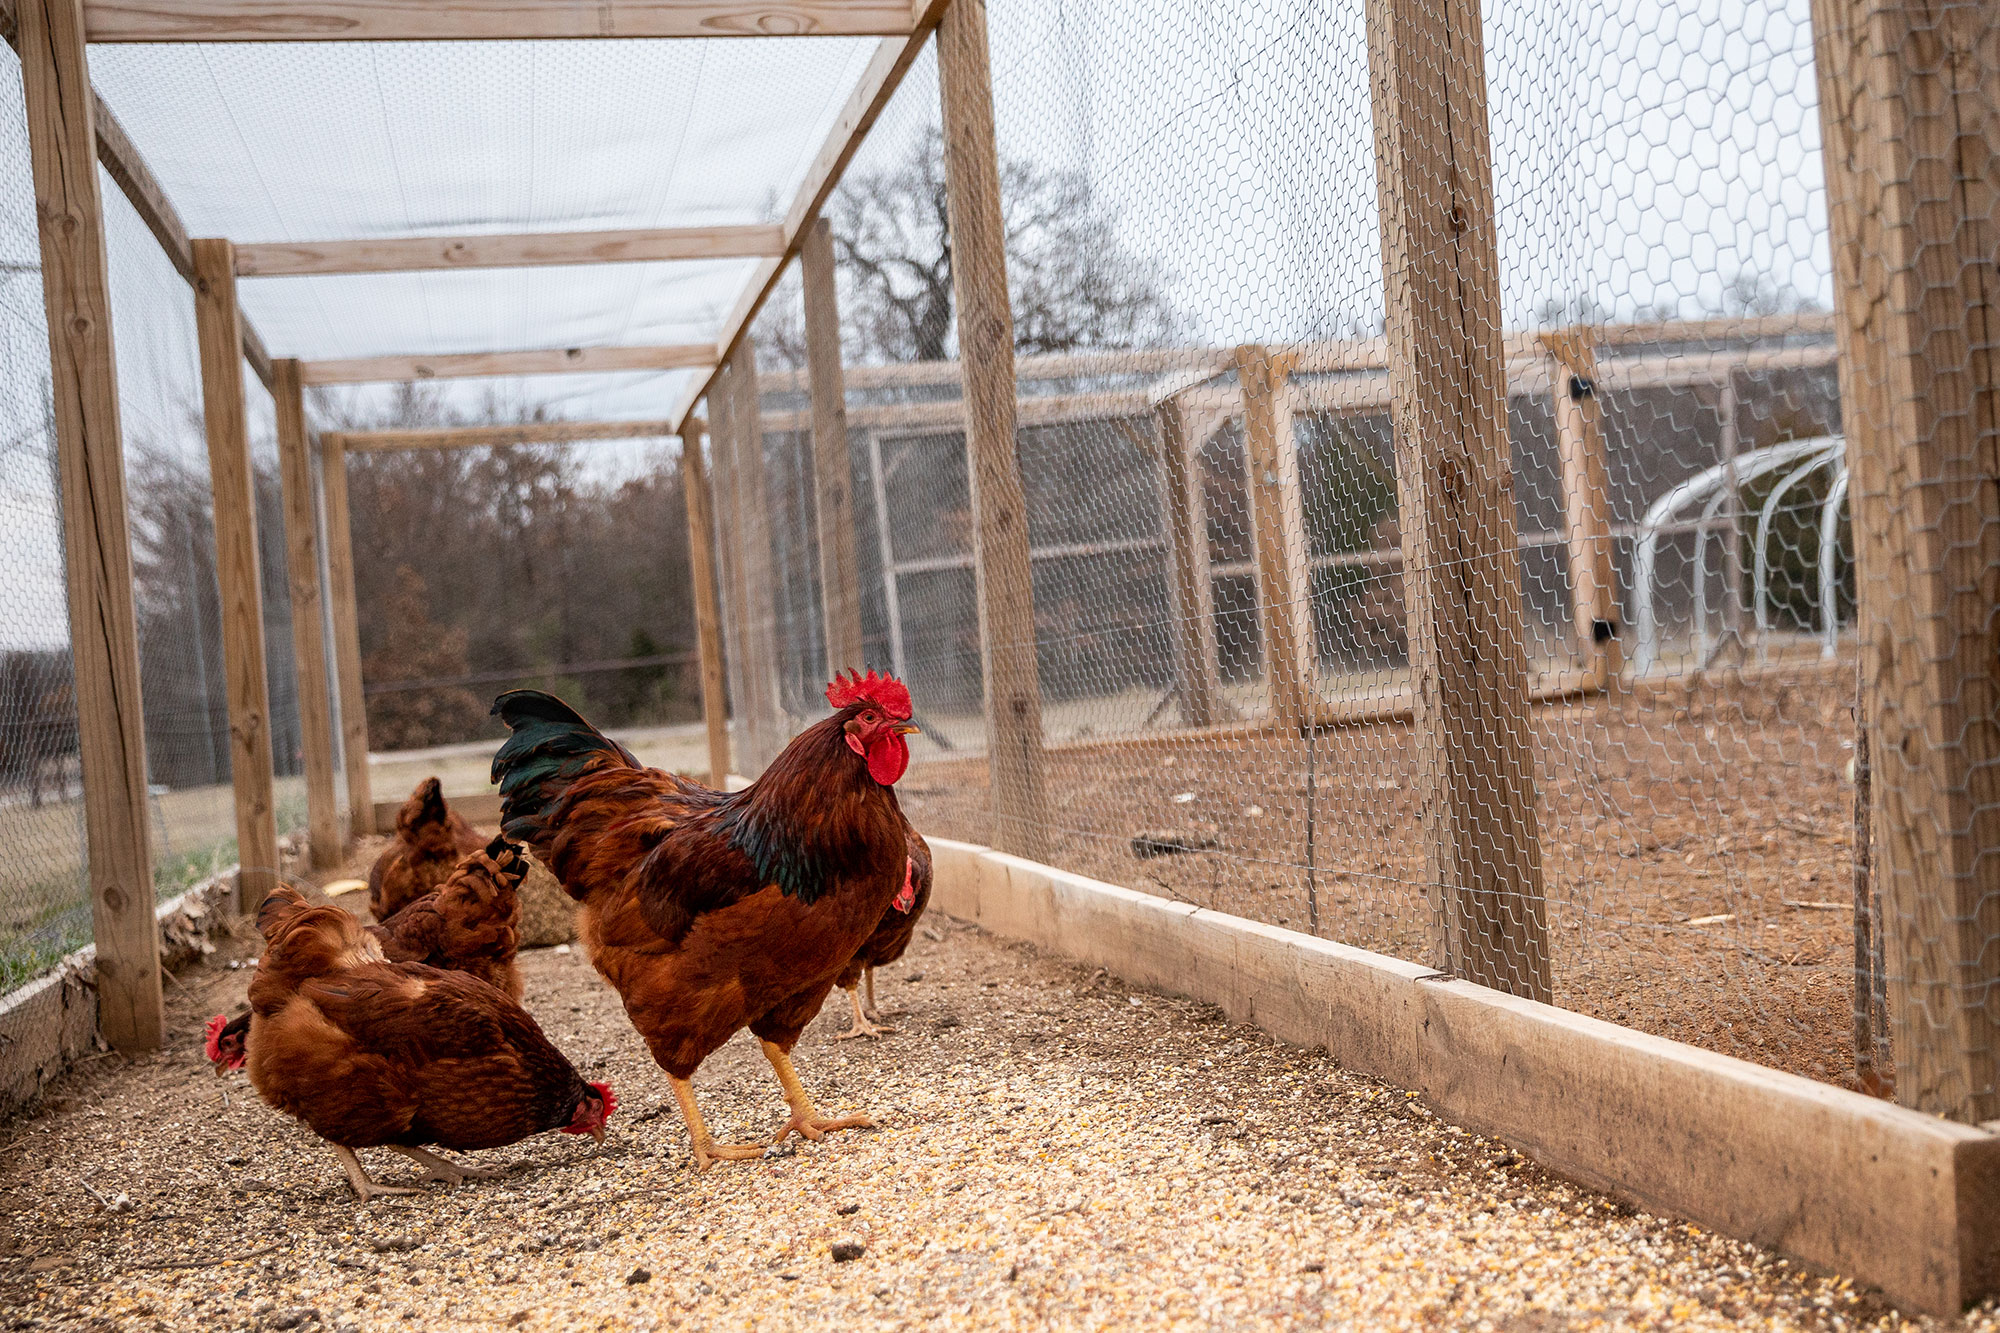 Chickens in Chicken Mote enclosure